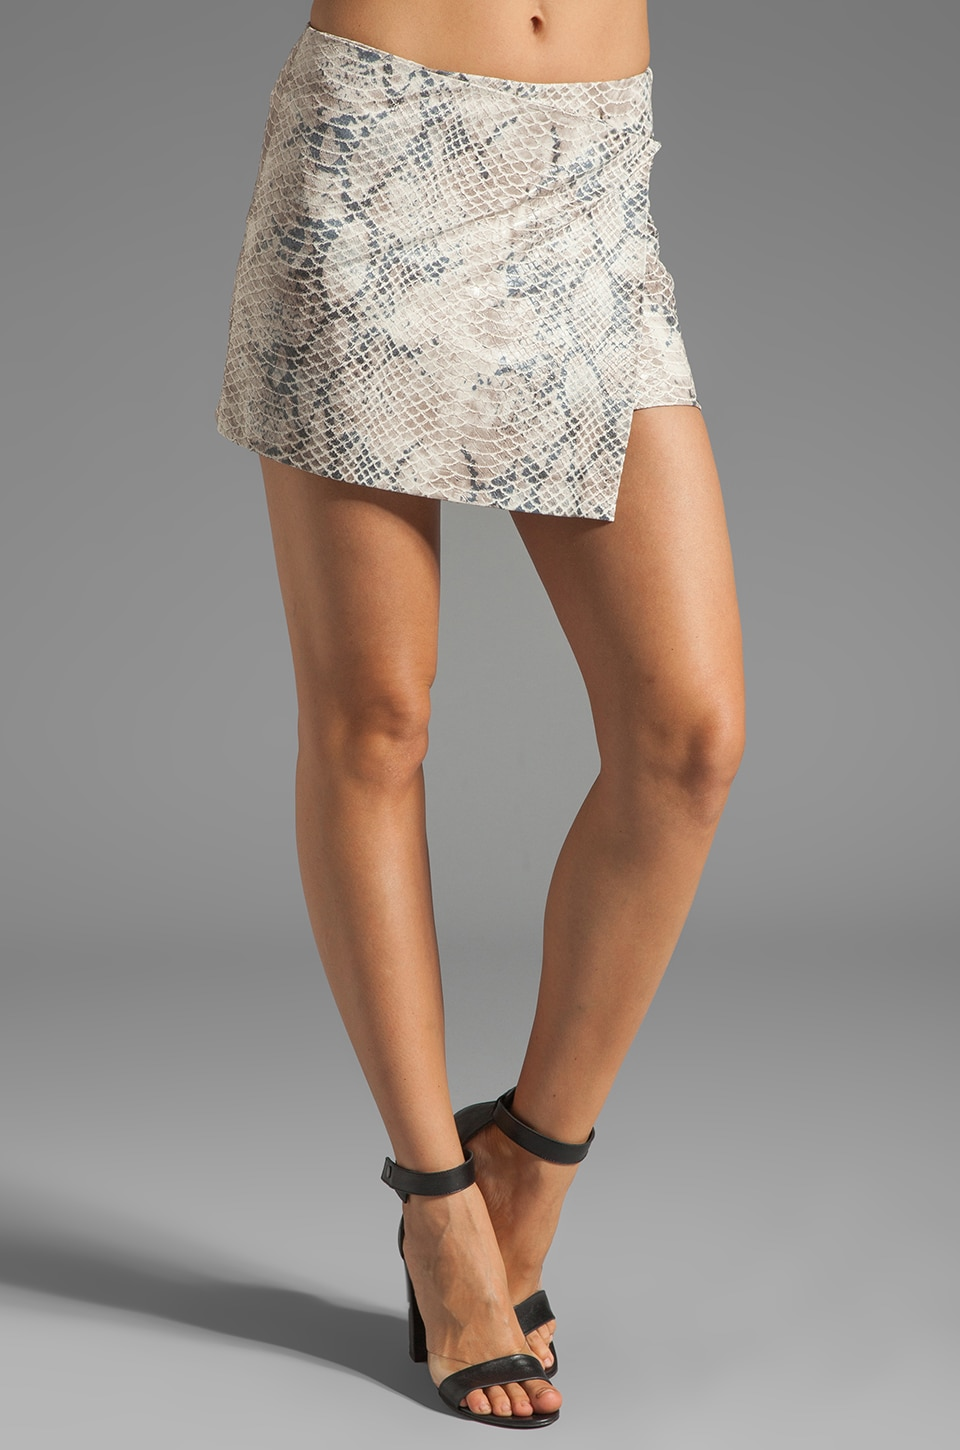 Gryphon Wrap Skirt in Cream